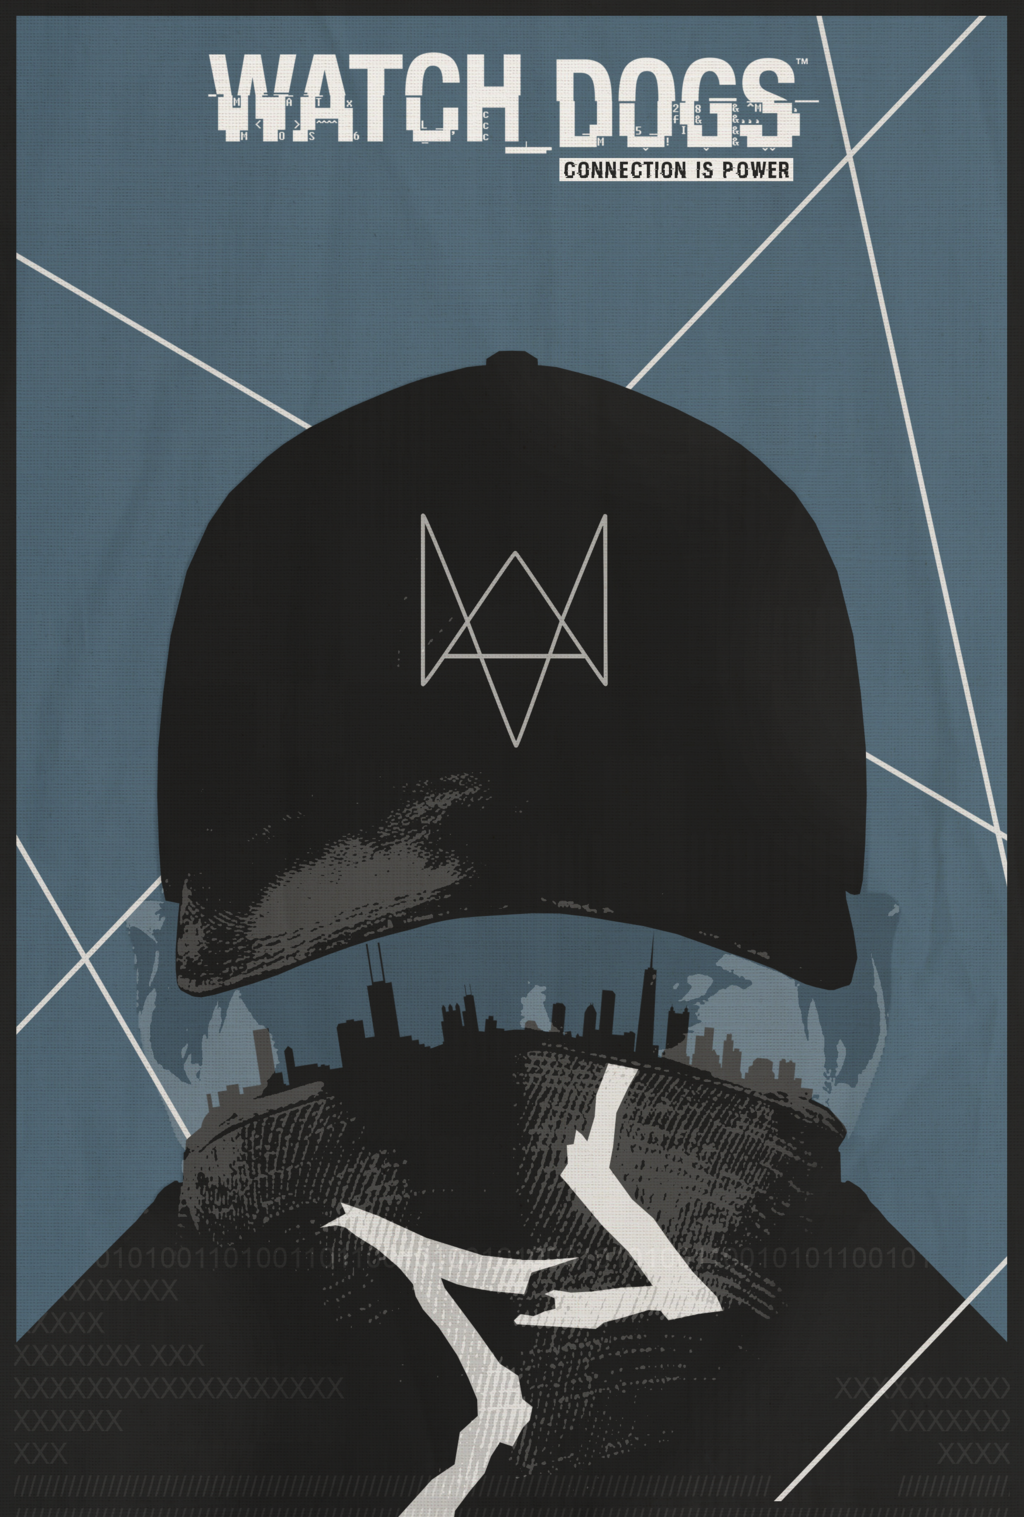 Uncharted Iphone Wallpaper Watch Dogs This Person Has Cool Style Will